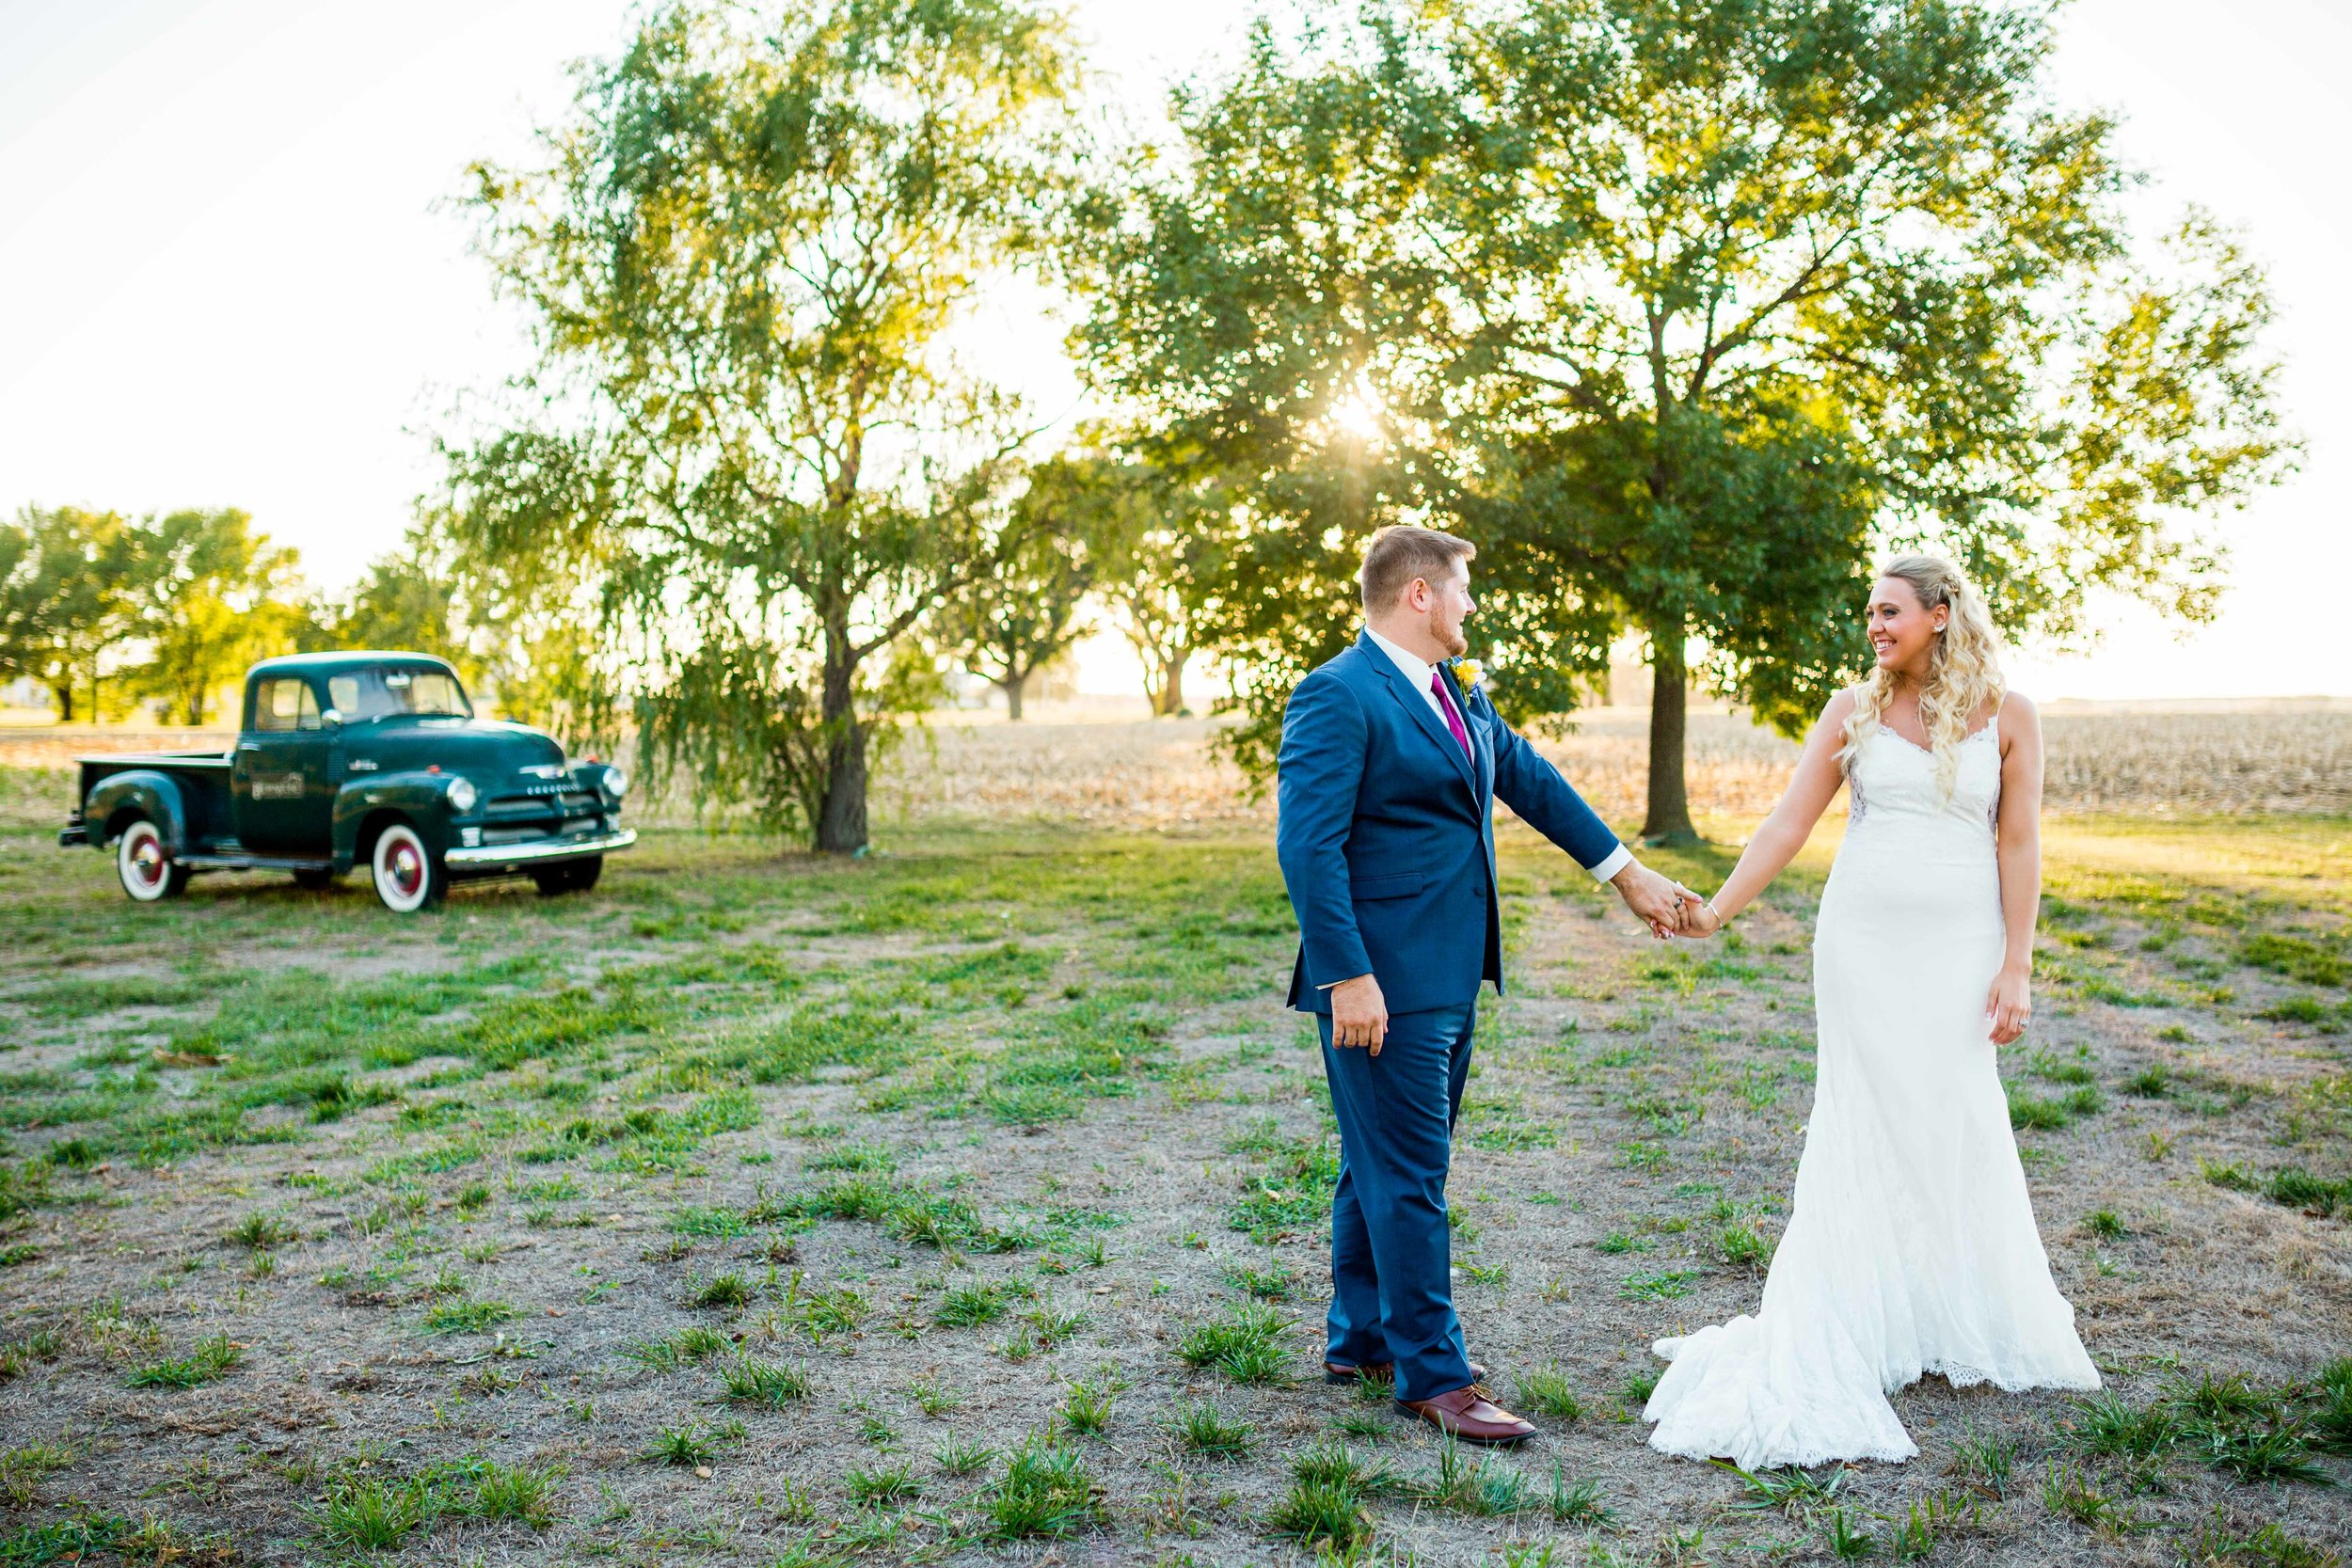 Huntington Beach Orange County Southern California Romantic Fun Rustic Elegant Wedding Engagement Photographer Photography by Glass Woods Media 2.jpg